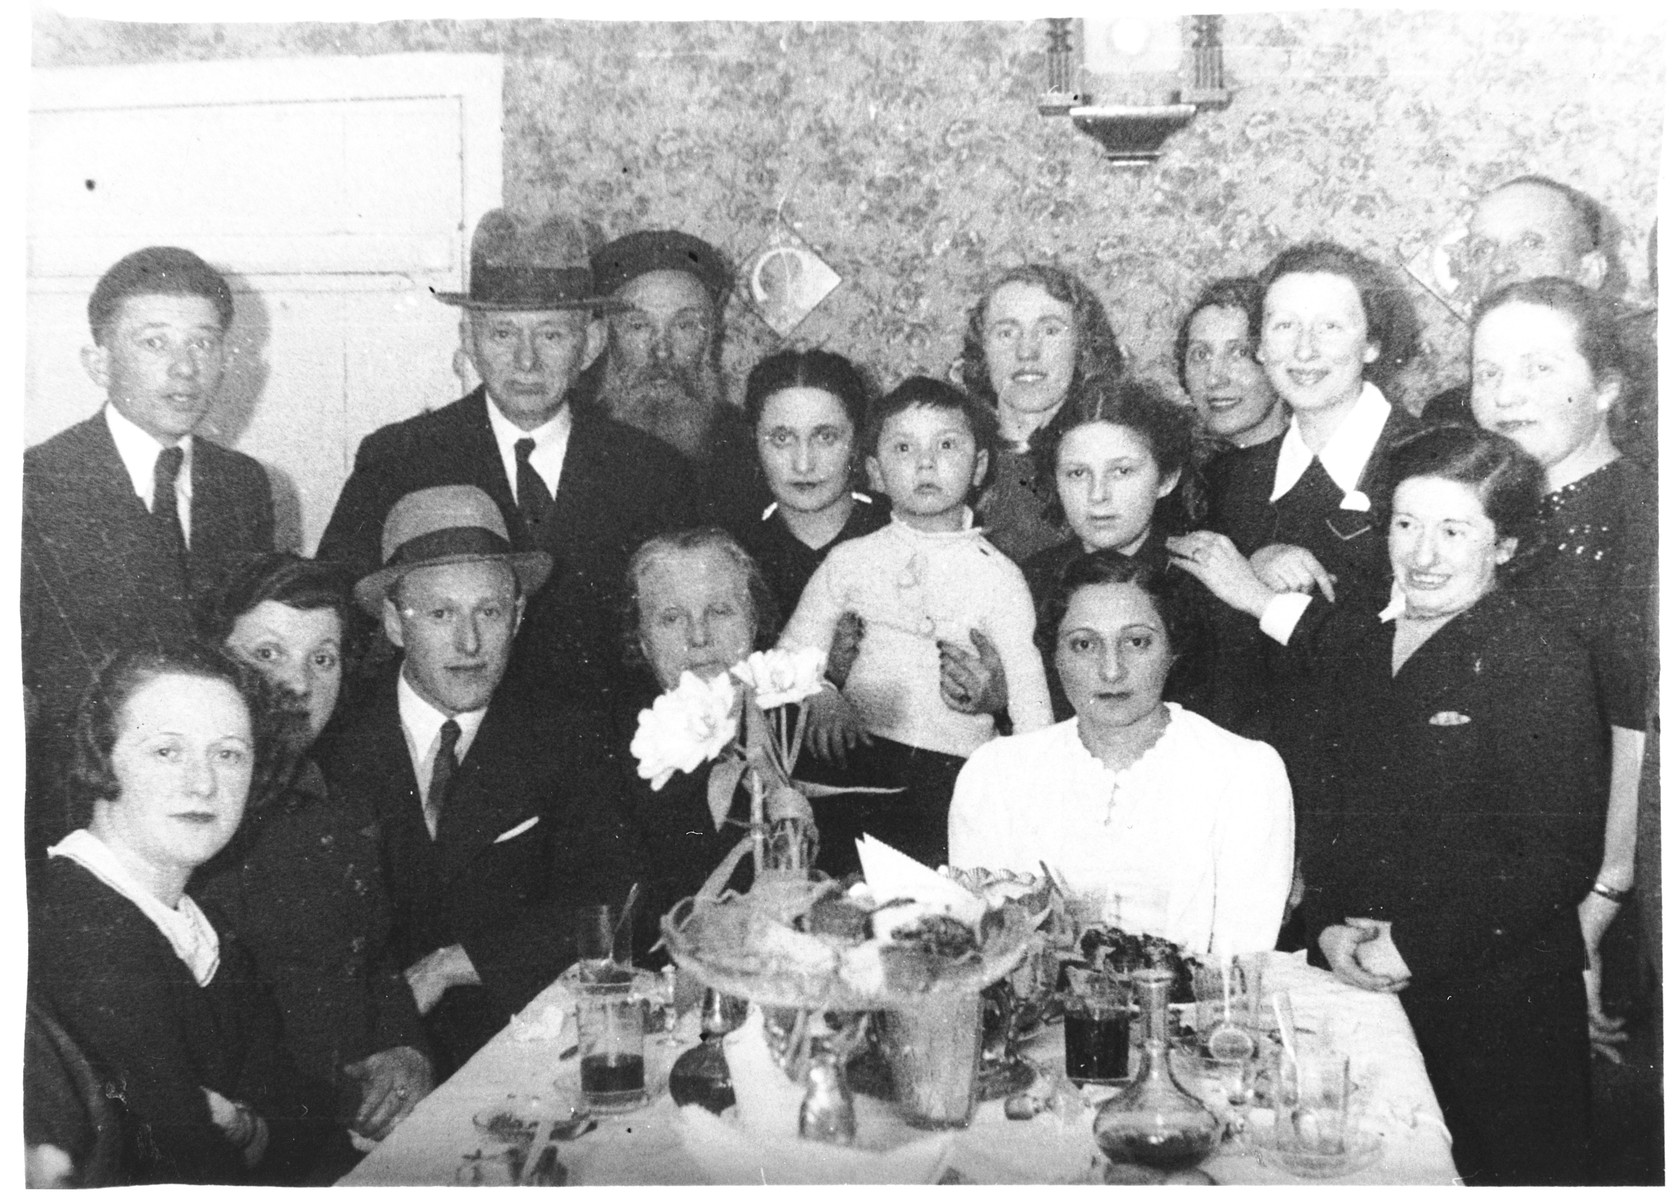 The Gertner family gathers around a table to celebrate the wedding of Josef and Peppa Gertner.